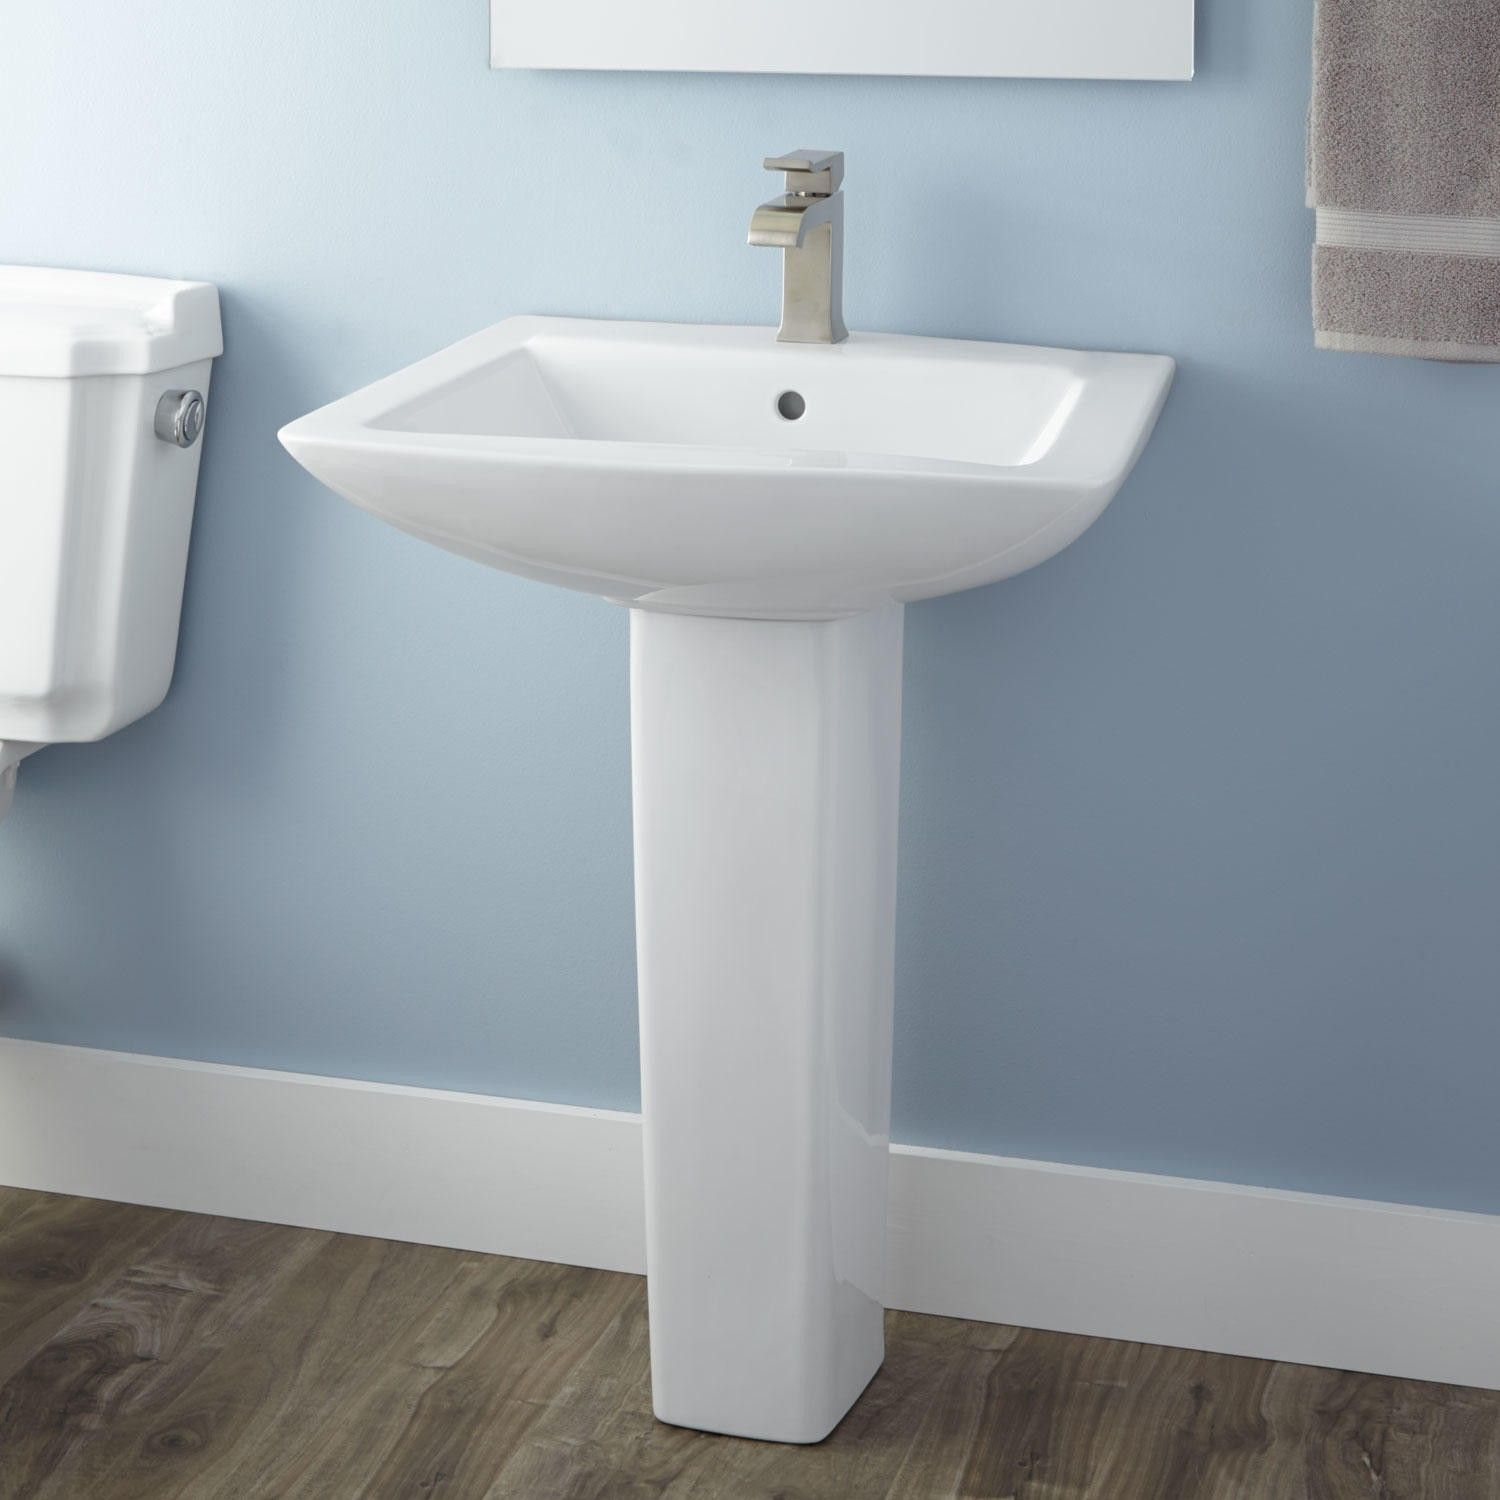 Bathroom Lavatory Sink Darby Porcelain Pedestal Sink Pedestal Pedestal Sink And Sinks